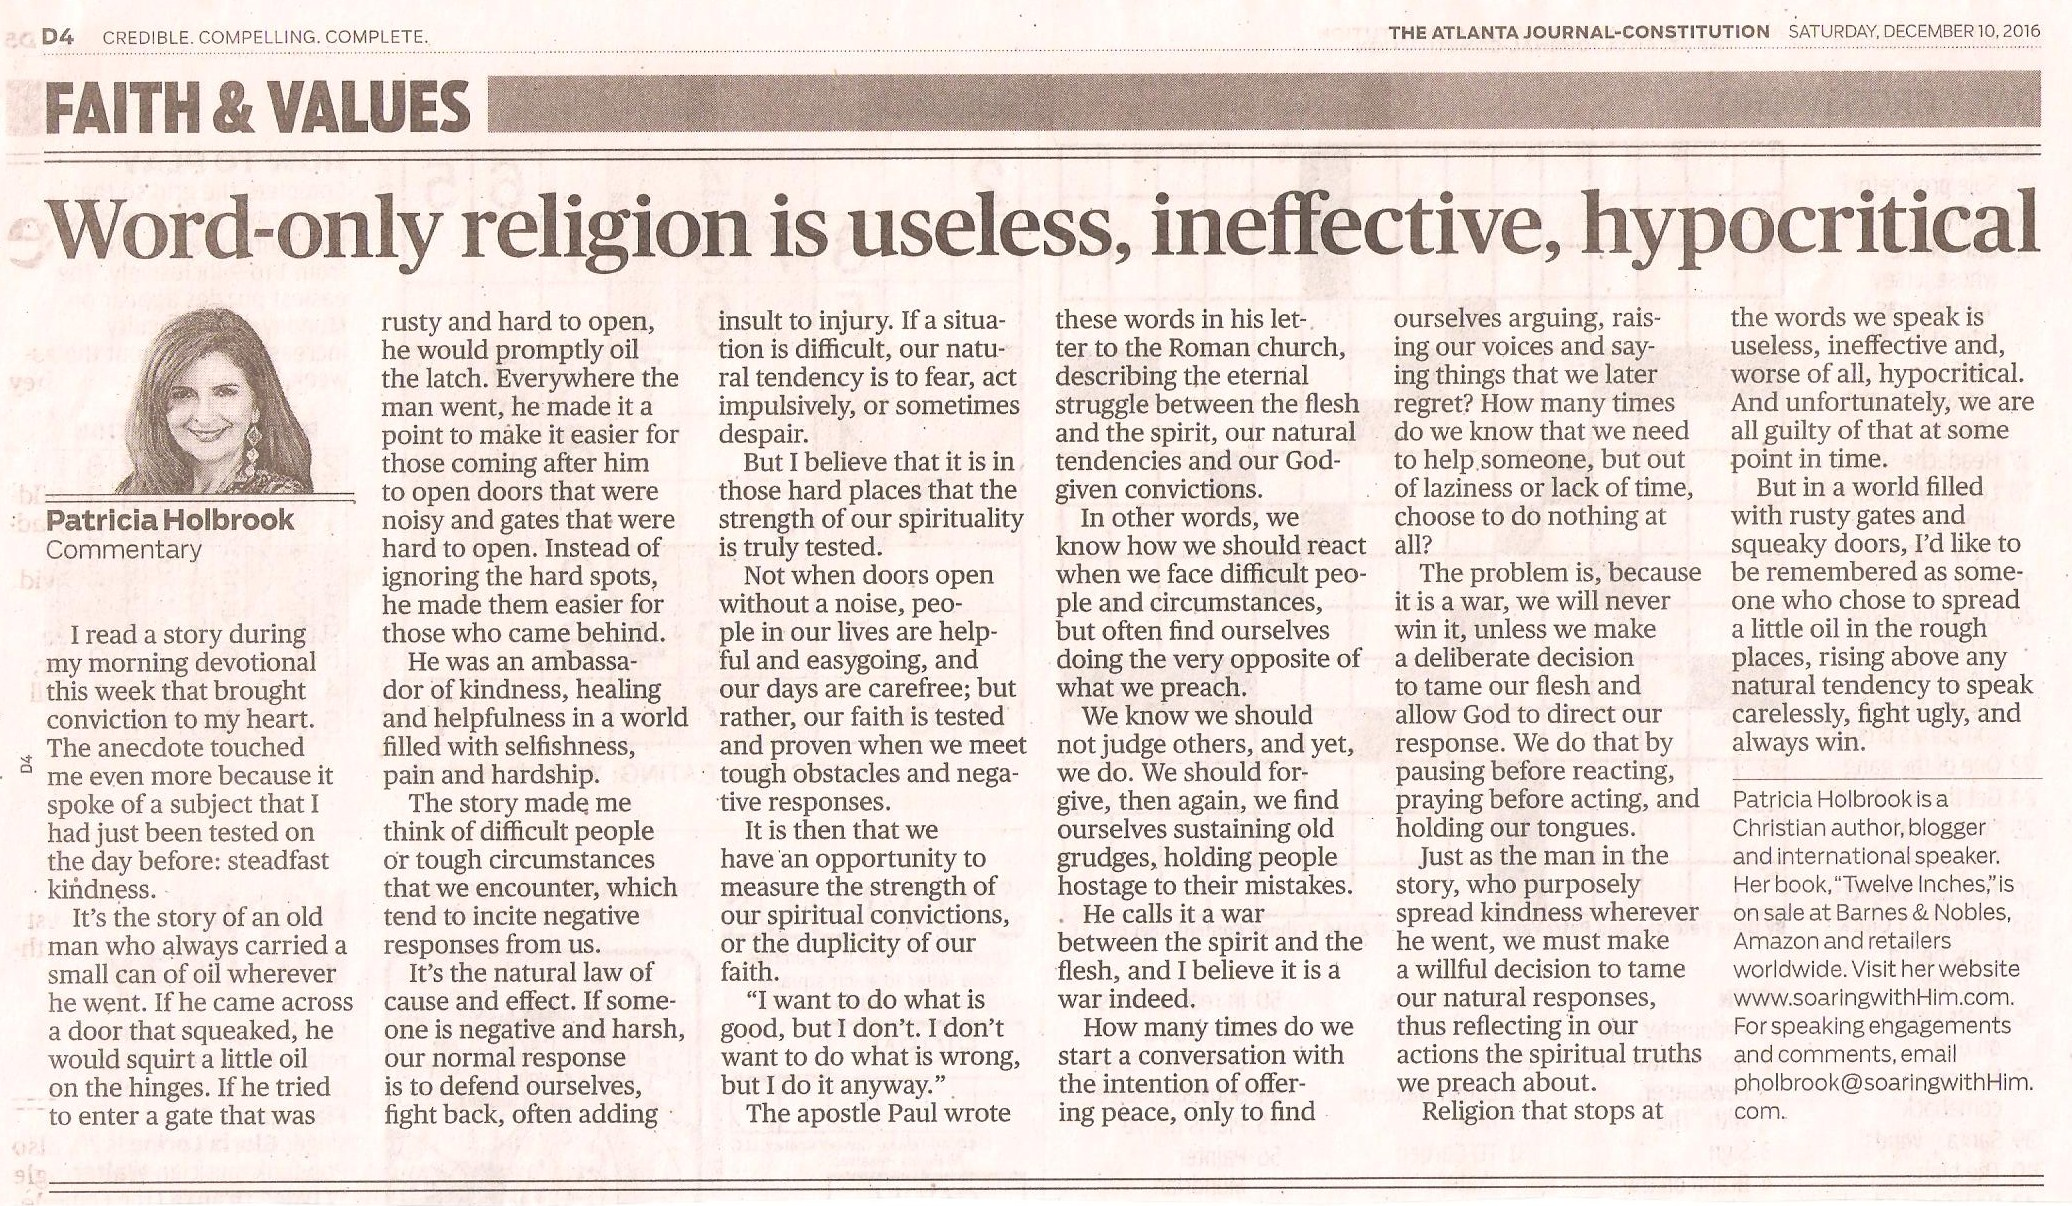 ajc-word-only-religion-12-09-16-001